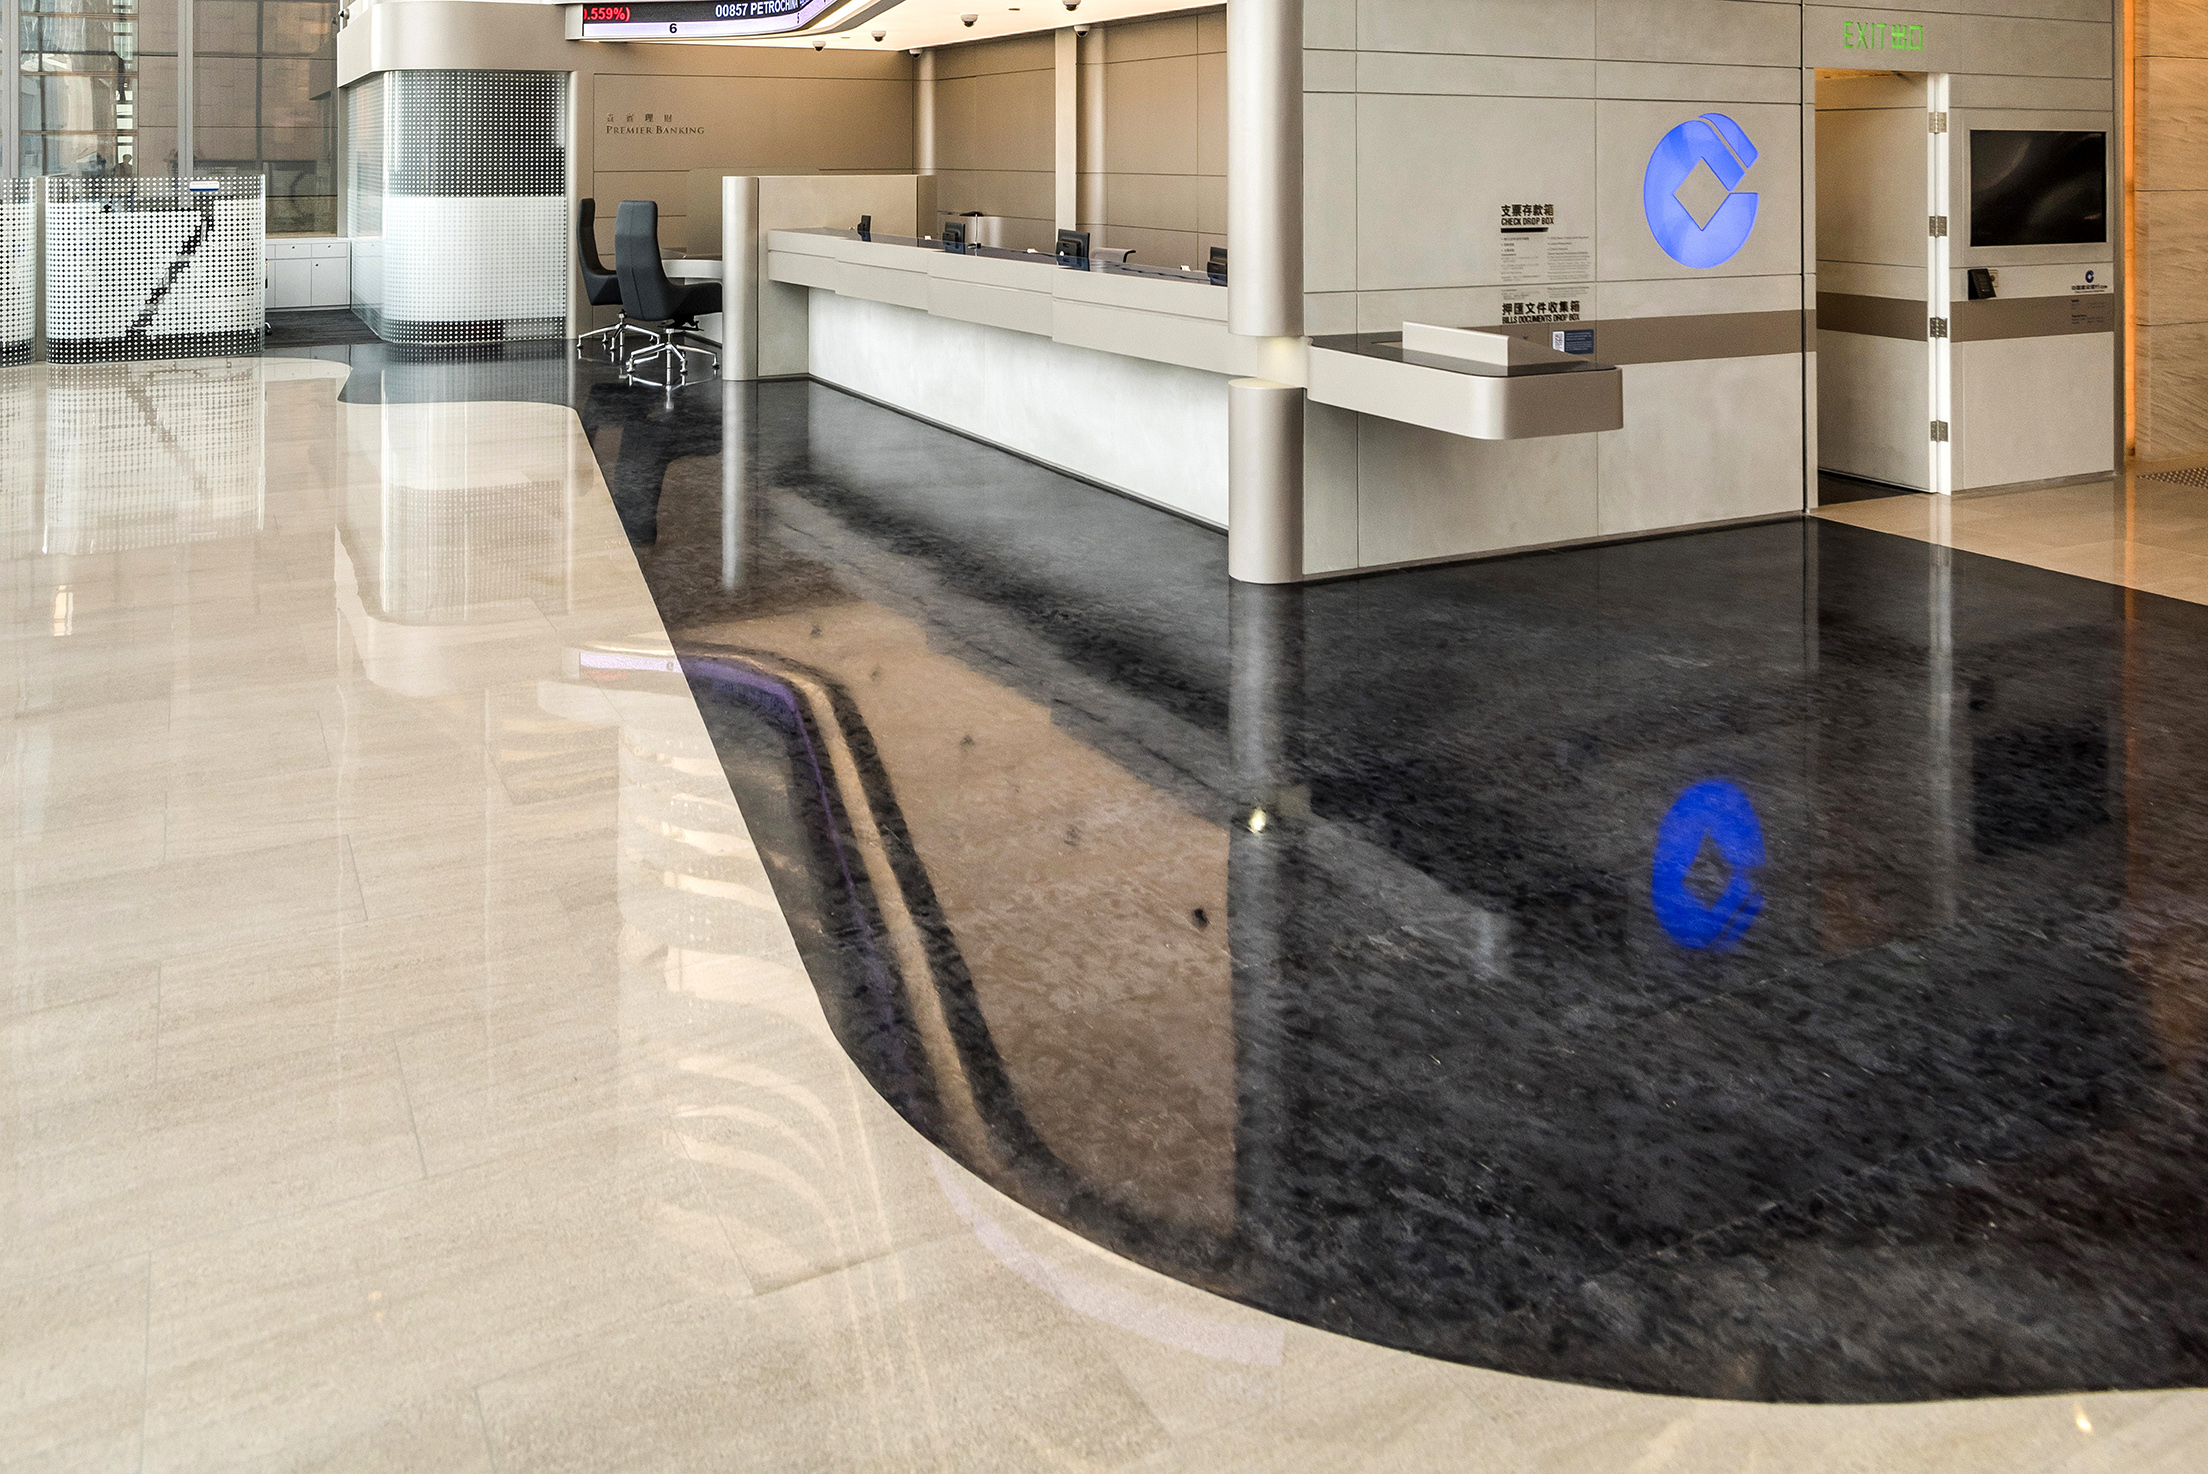 jeb_architectural_natural_stone_marble-01.jpg